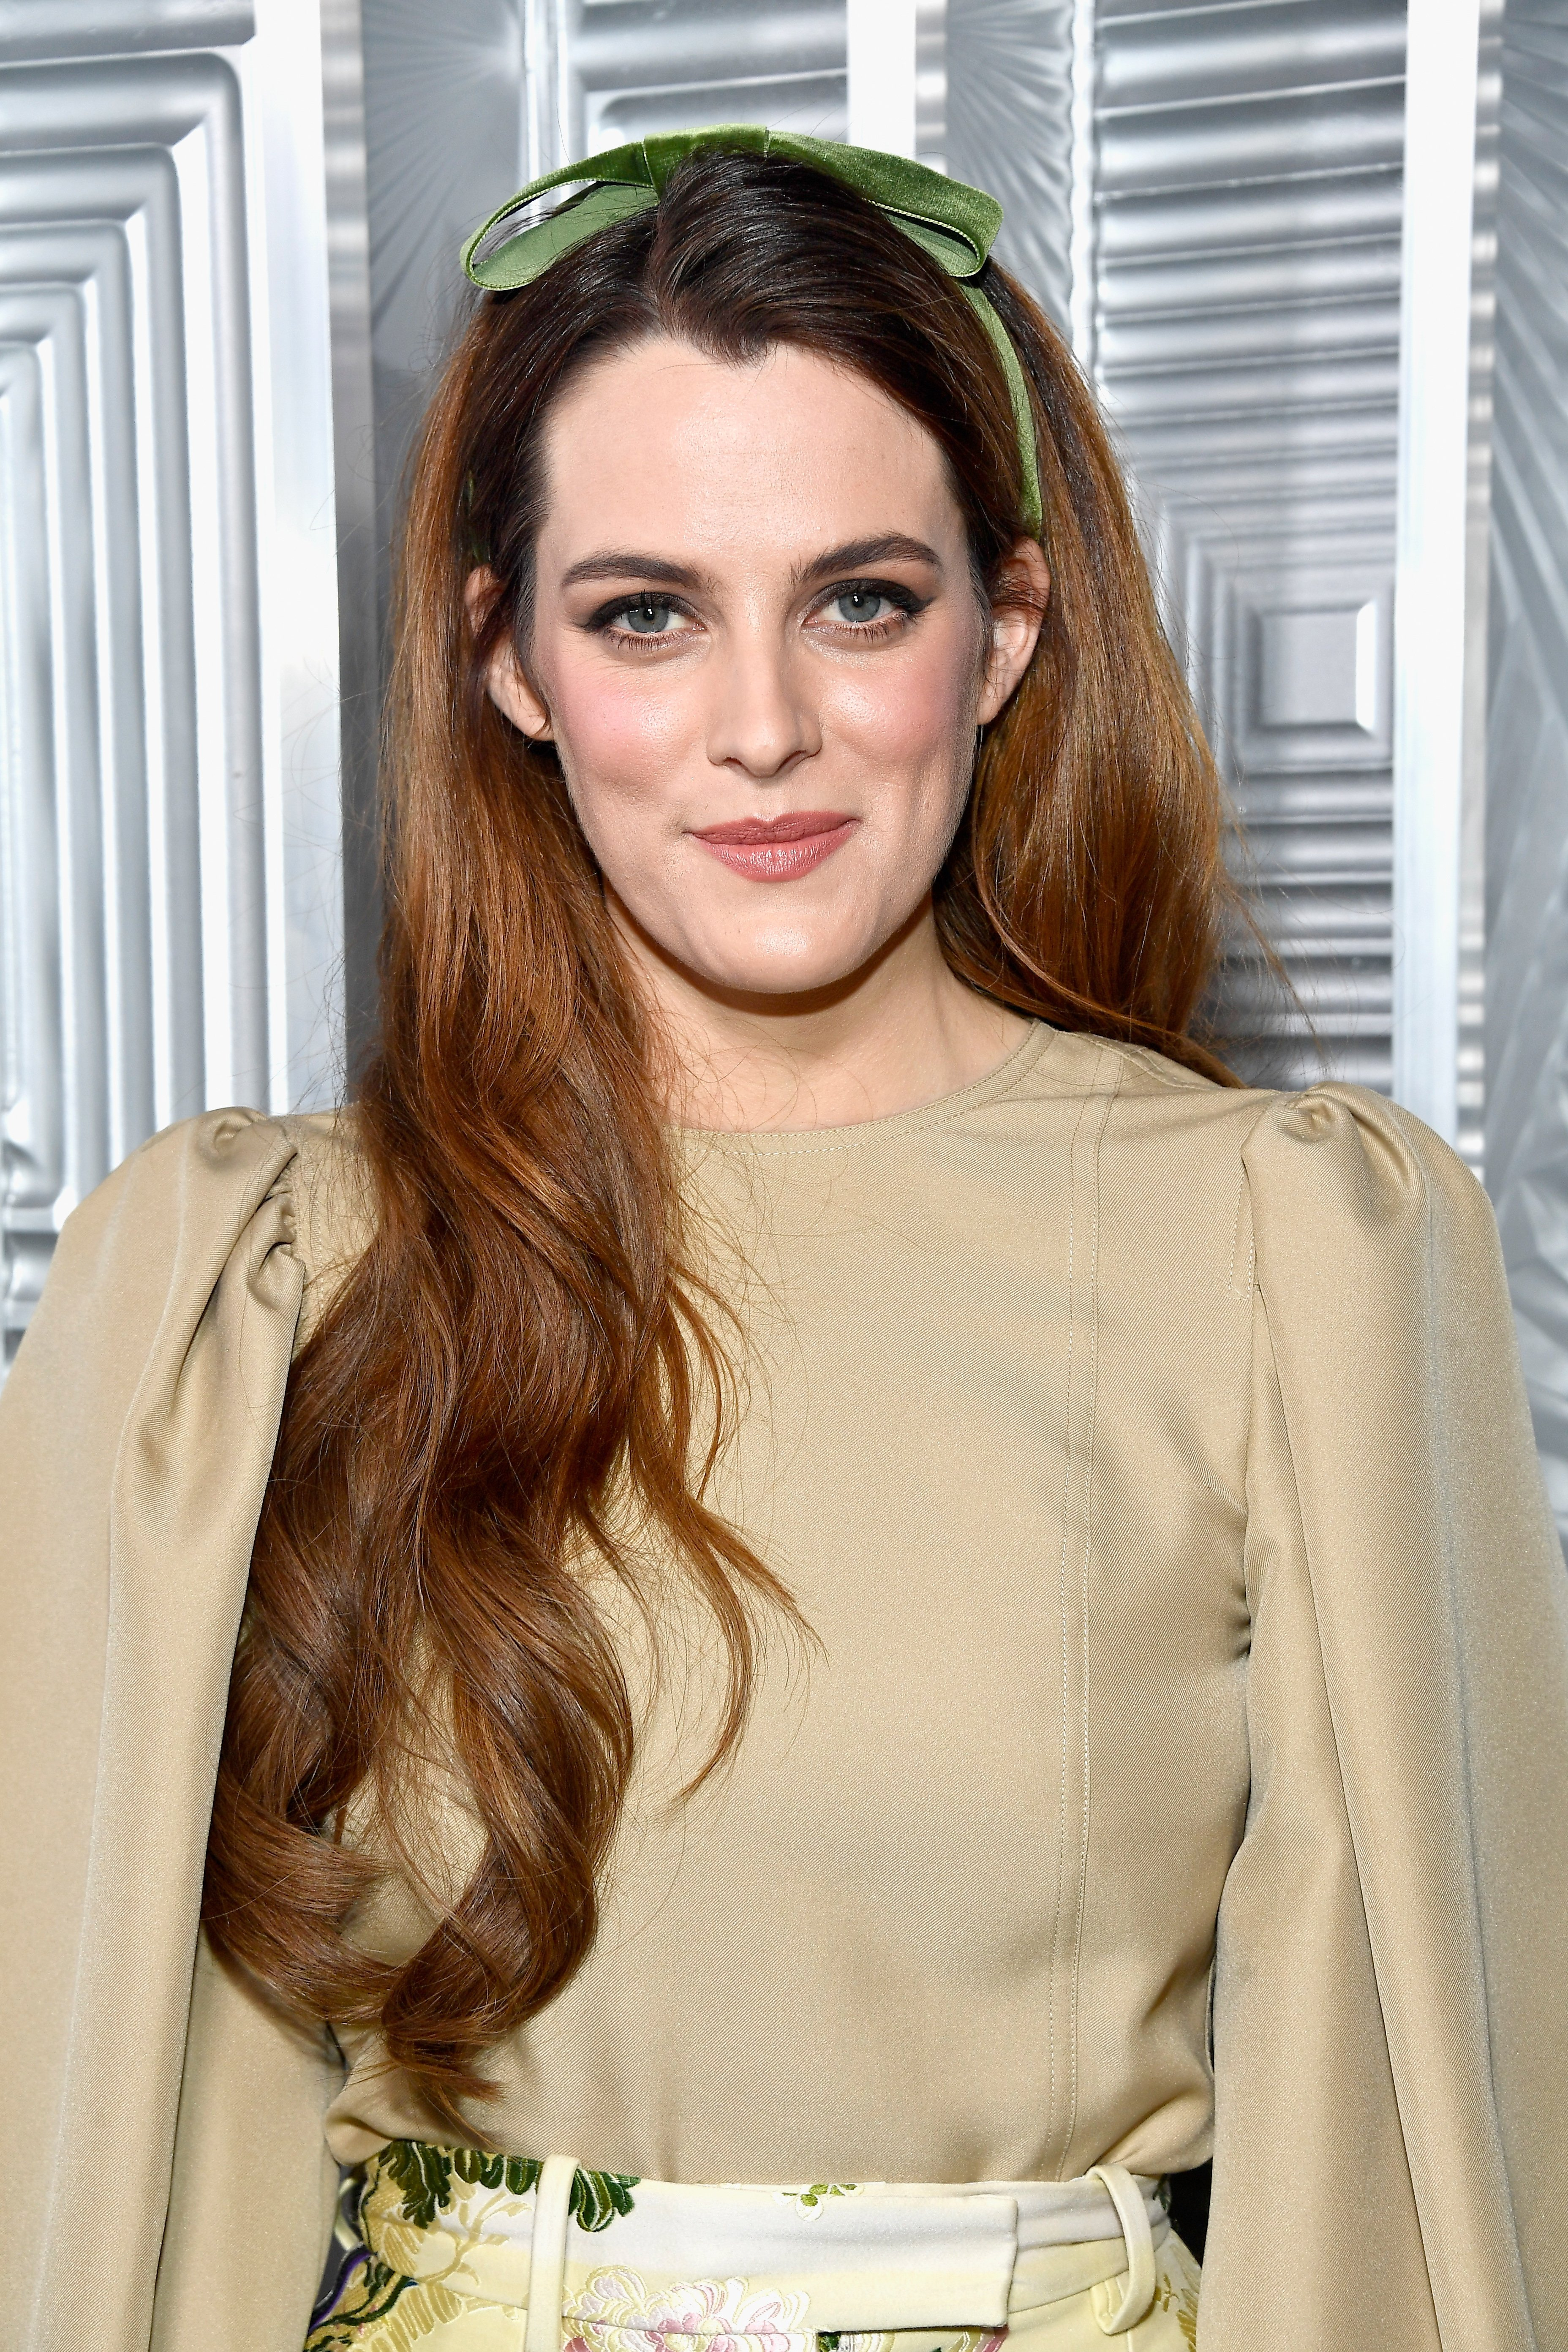 Riley Keough attends ELLE's 24th Annual Women in Hollywood Celebration in Los Angeles, California on October 16, 2017 | Photo: Getty Images